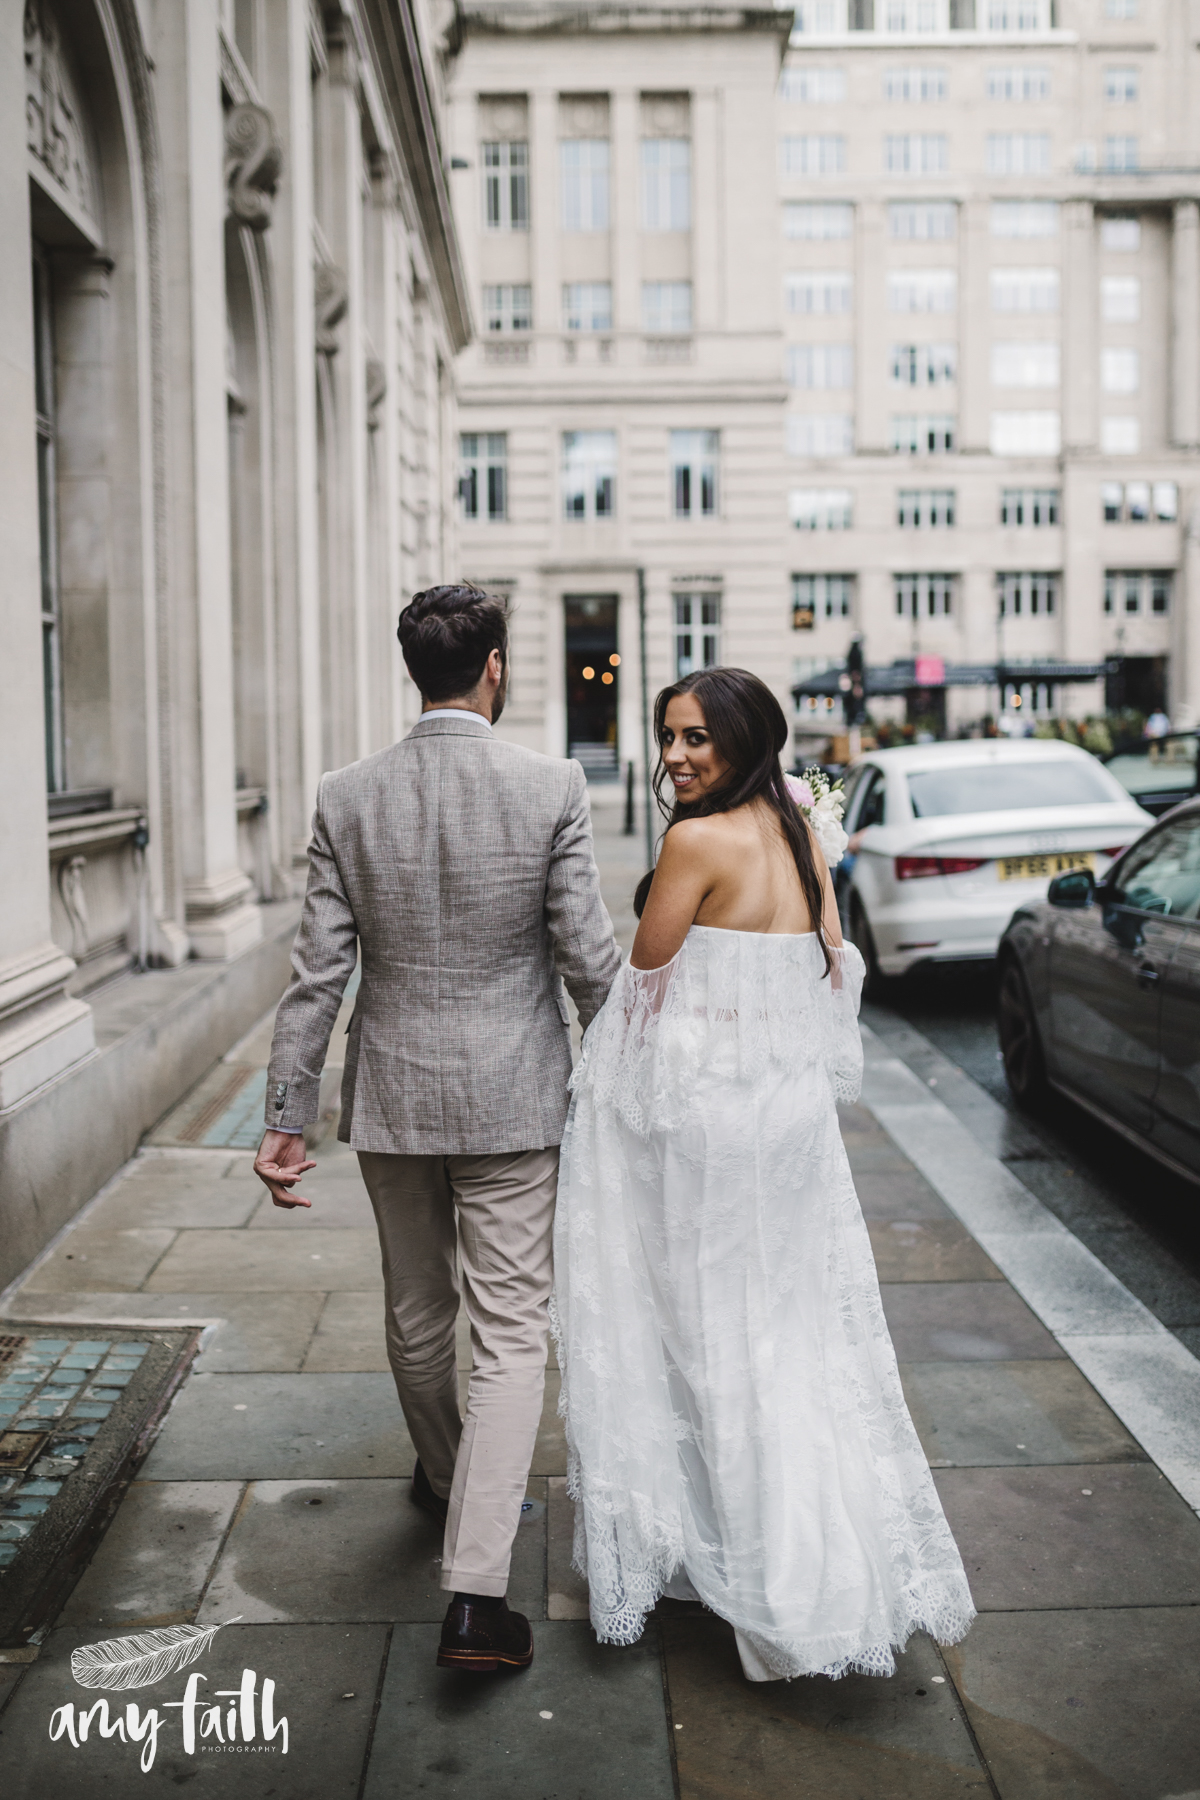 A bride and groom walking down a city street.